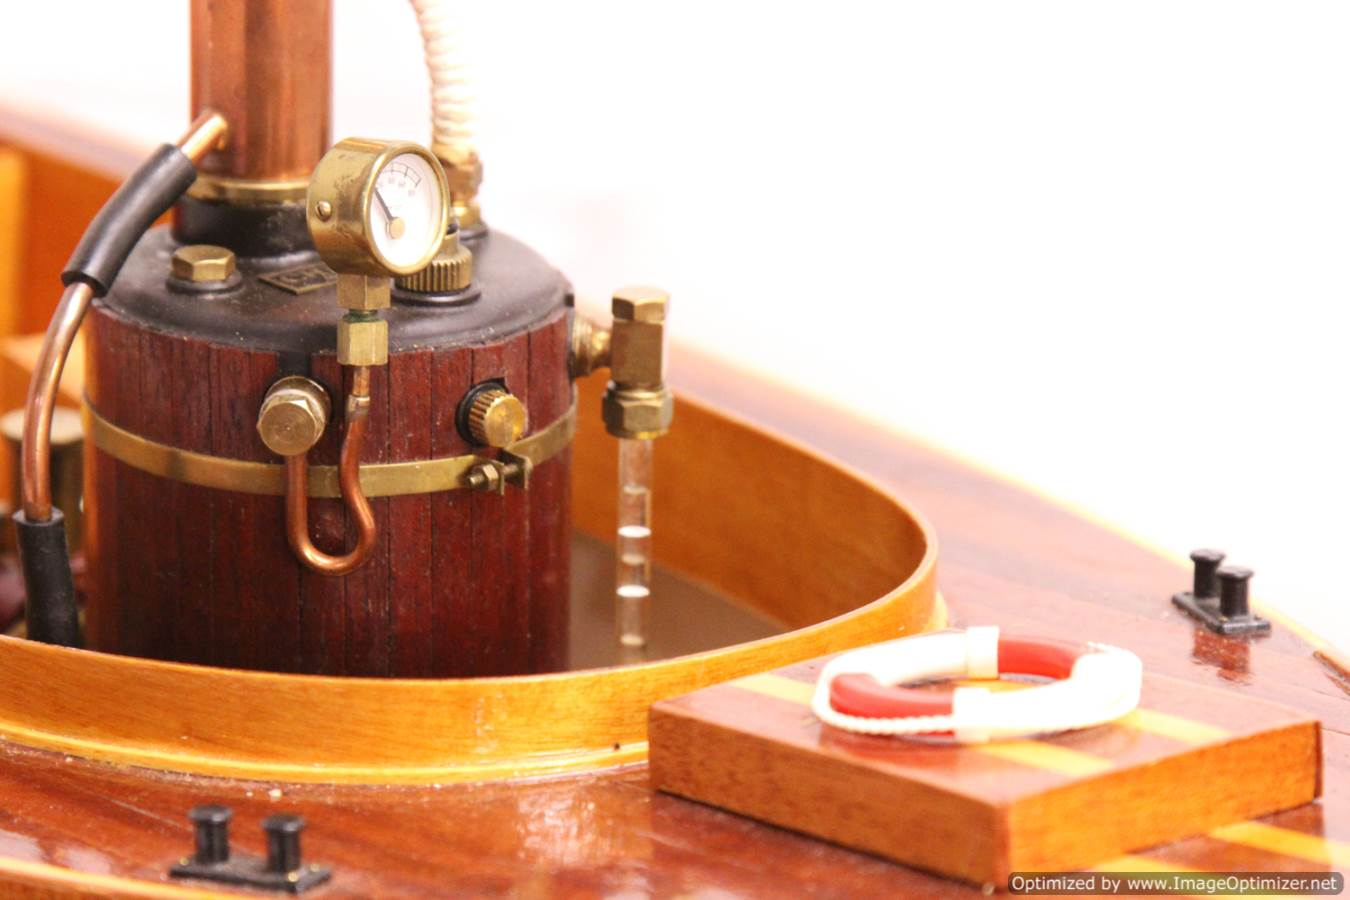 test anna-cheddar-steam-boat-live-steam-model-for-sale-02-optimized